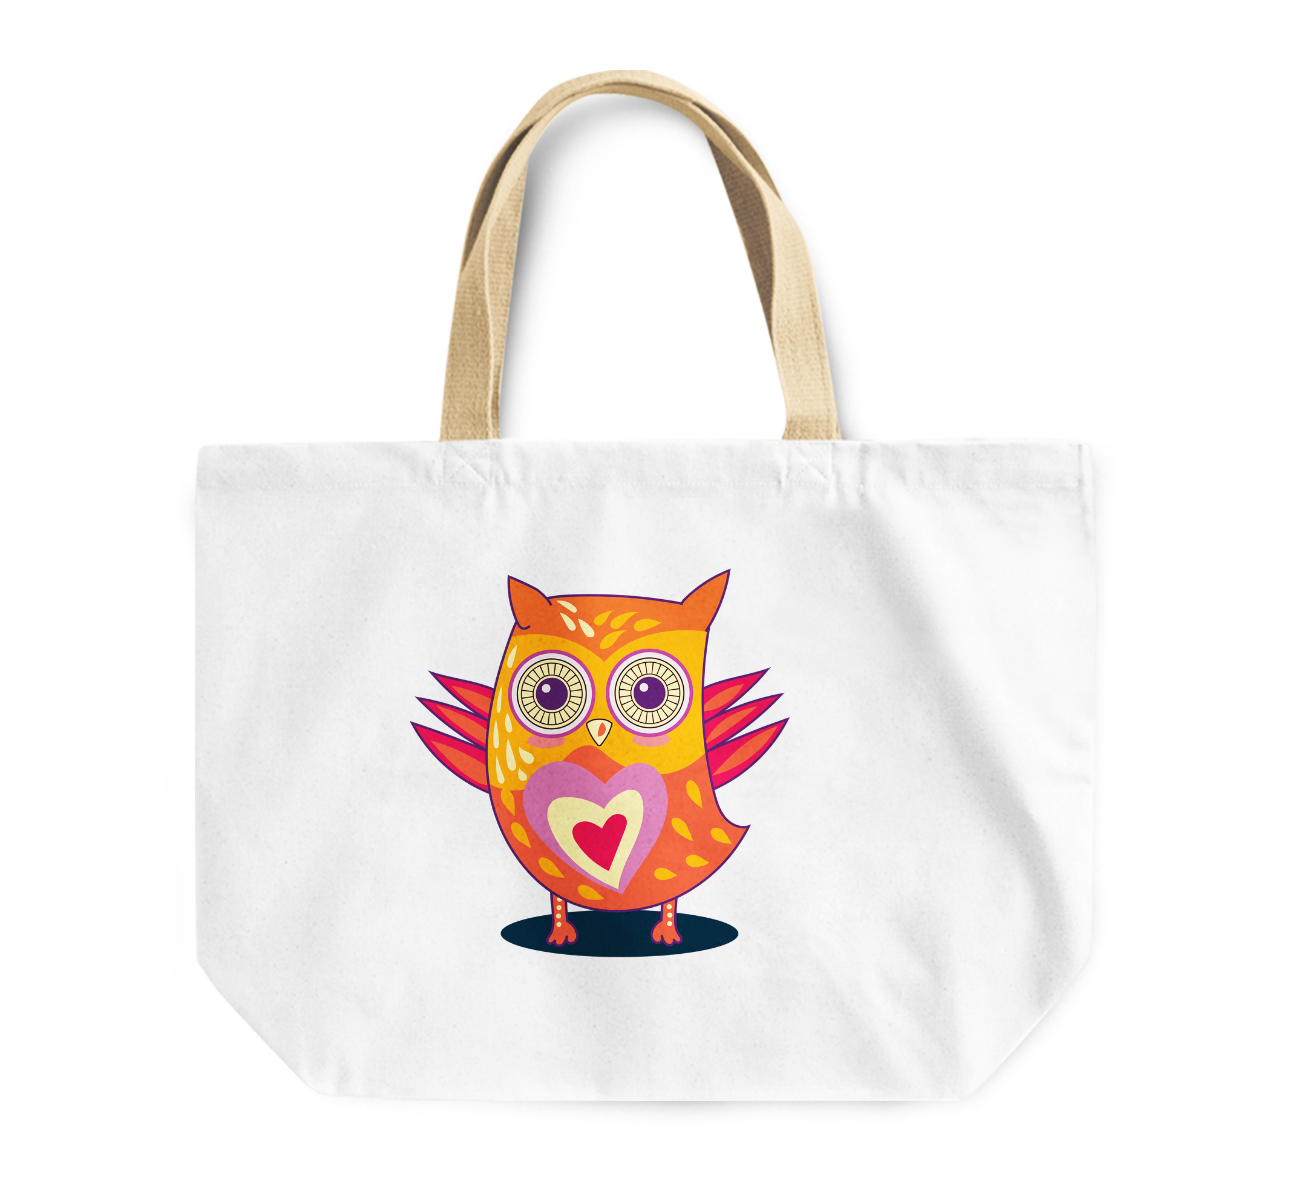 Tote Bag Cute Owl Reusable Shopping Bag Love Heart Couples Reusable Shopping Bag By Loud Universe